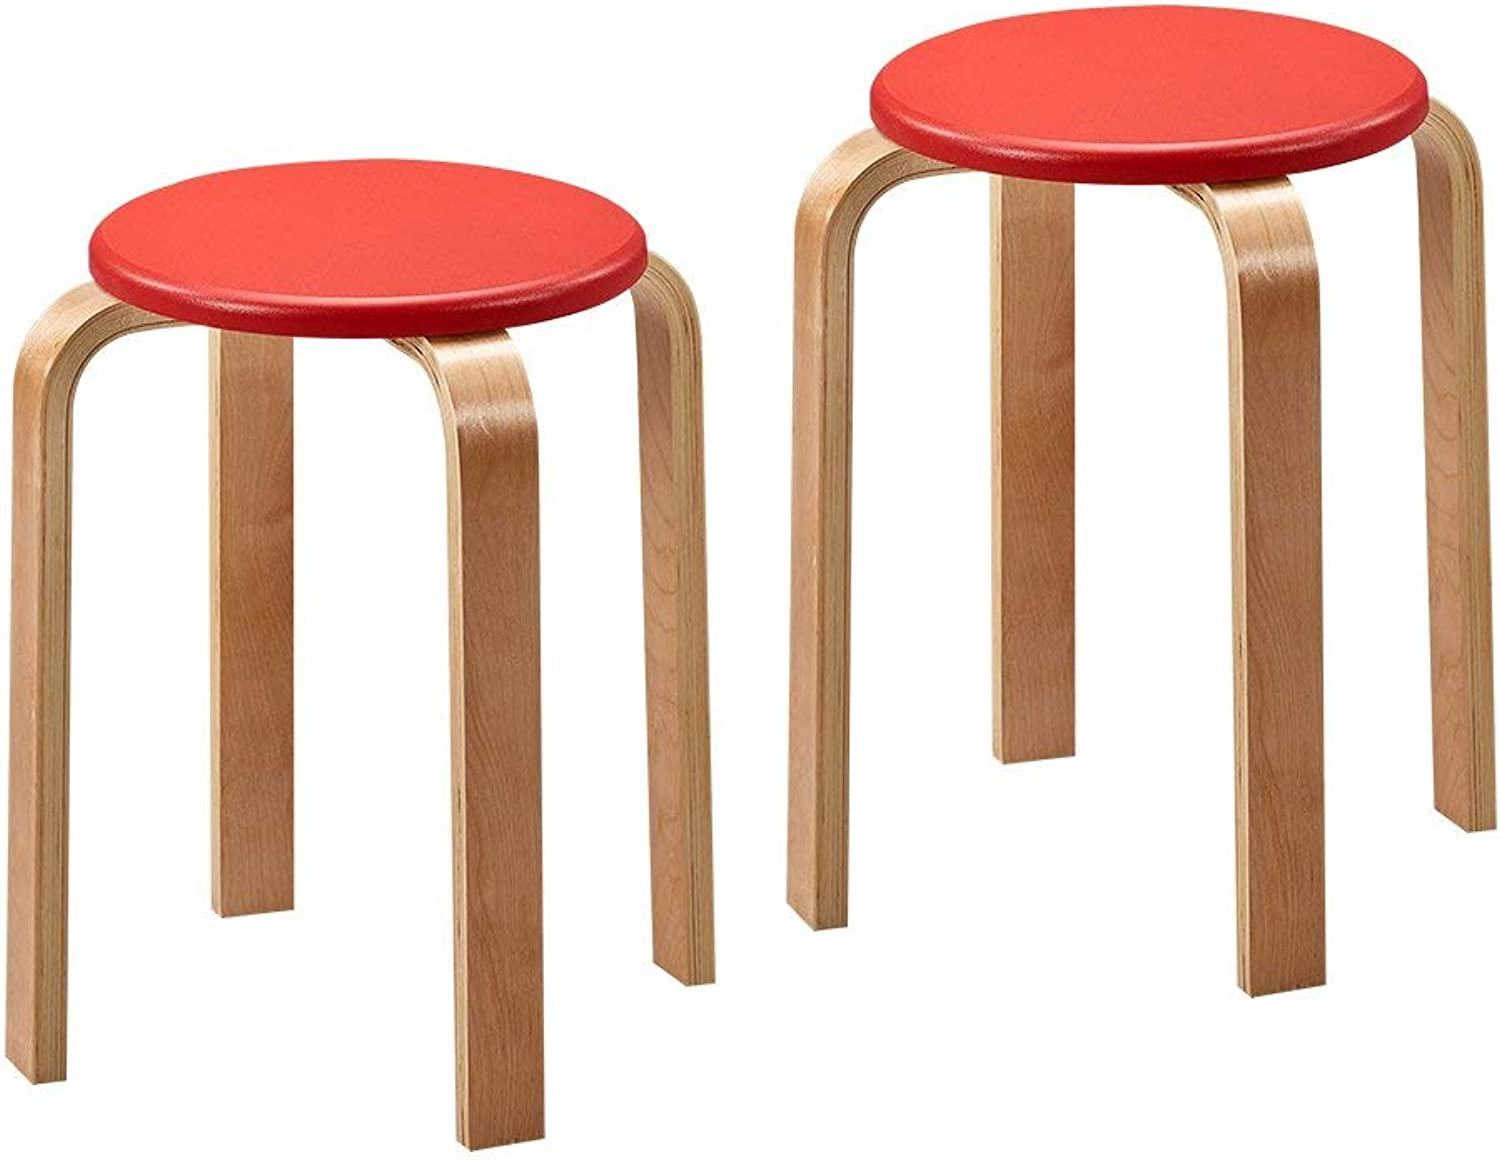 Sensational Monfs Home Plastic Plastic Plastic Stool Thick Solid Wood Gmtry Best Dining Table And Chair Ideas Images Gmtryco